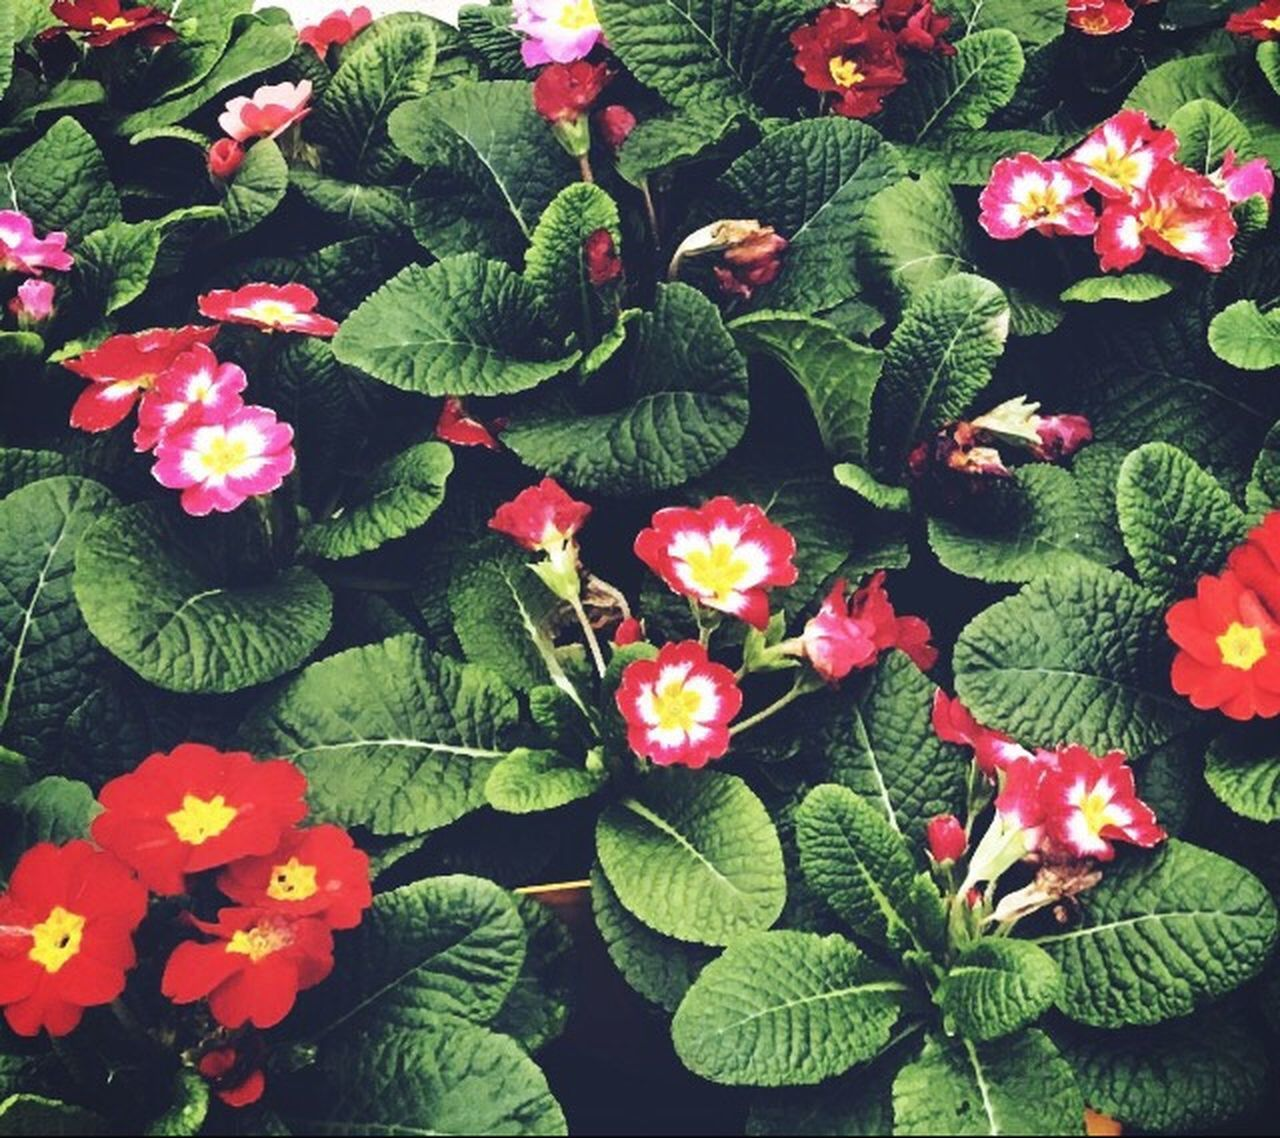 Growth Nature Plant Flower Beauty In Nature Green Color Leaf Fragility Freshness High Angle View No People Petal Outdoors Day Close-up Flower Head Flowers Leaves Plants And Flowers Plants Primrose Green Colors Vibrant Vibrant Color